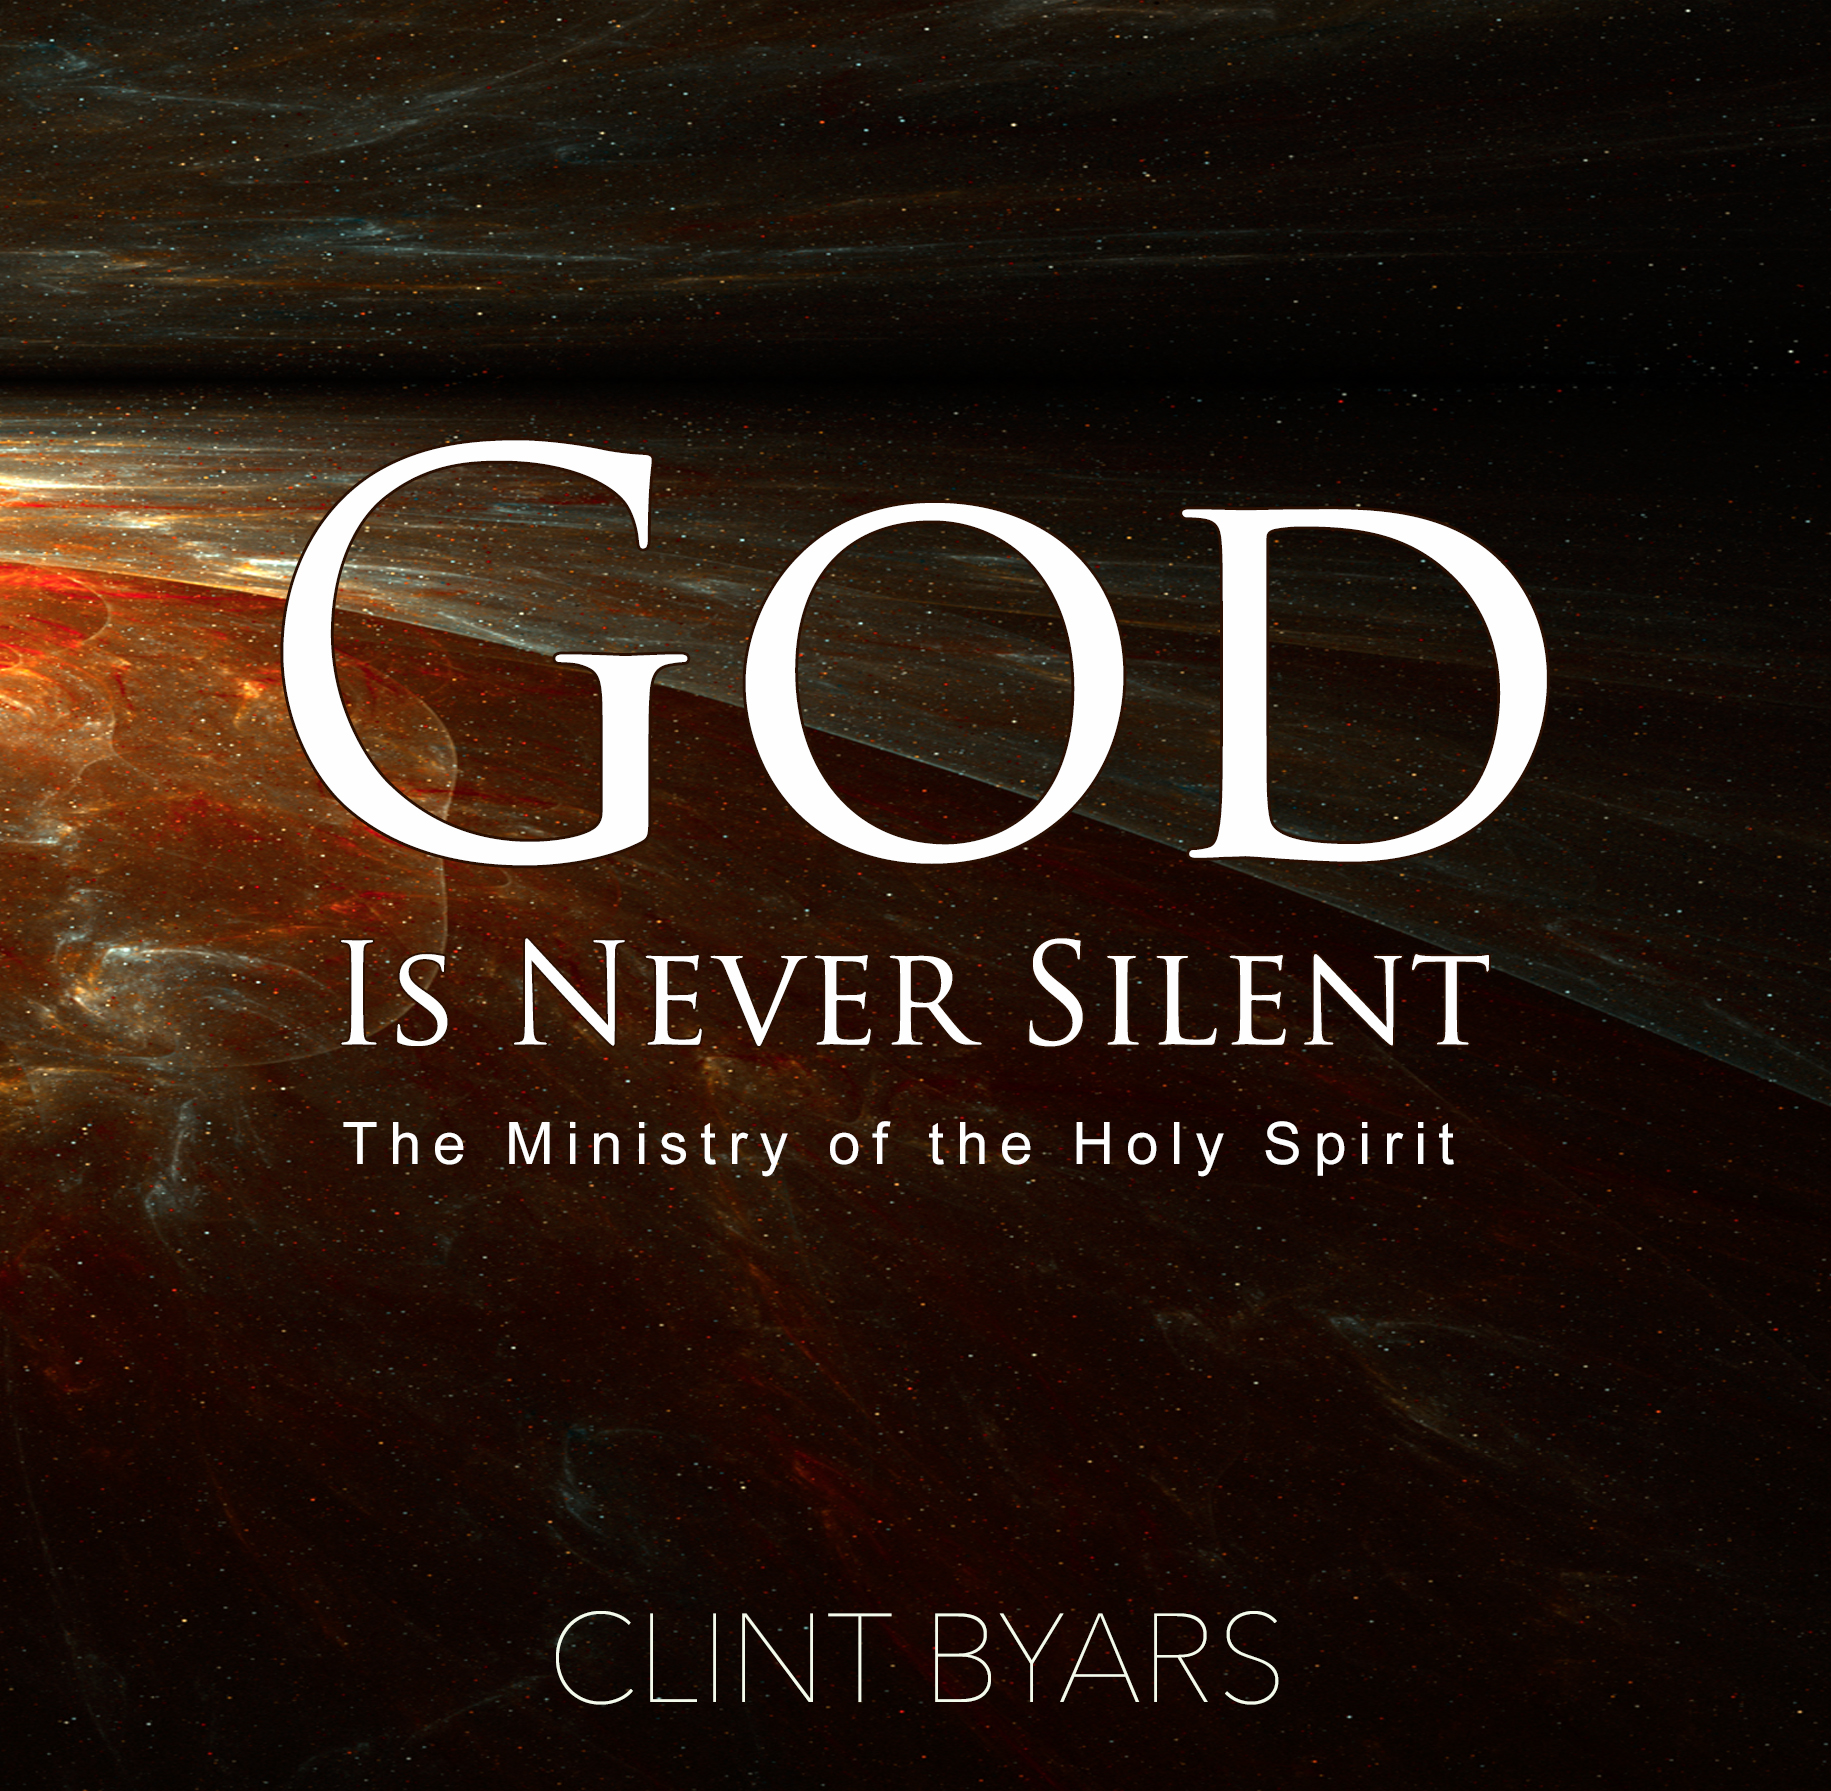 God Is Never Silent frnt.jpg